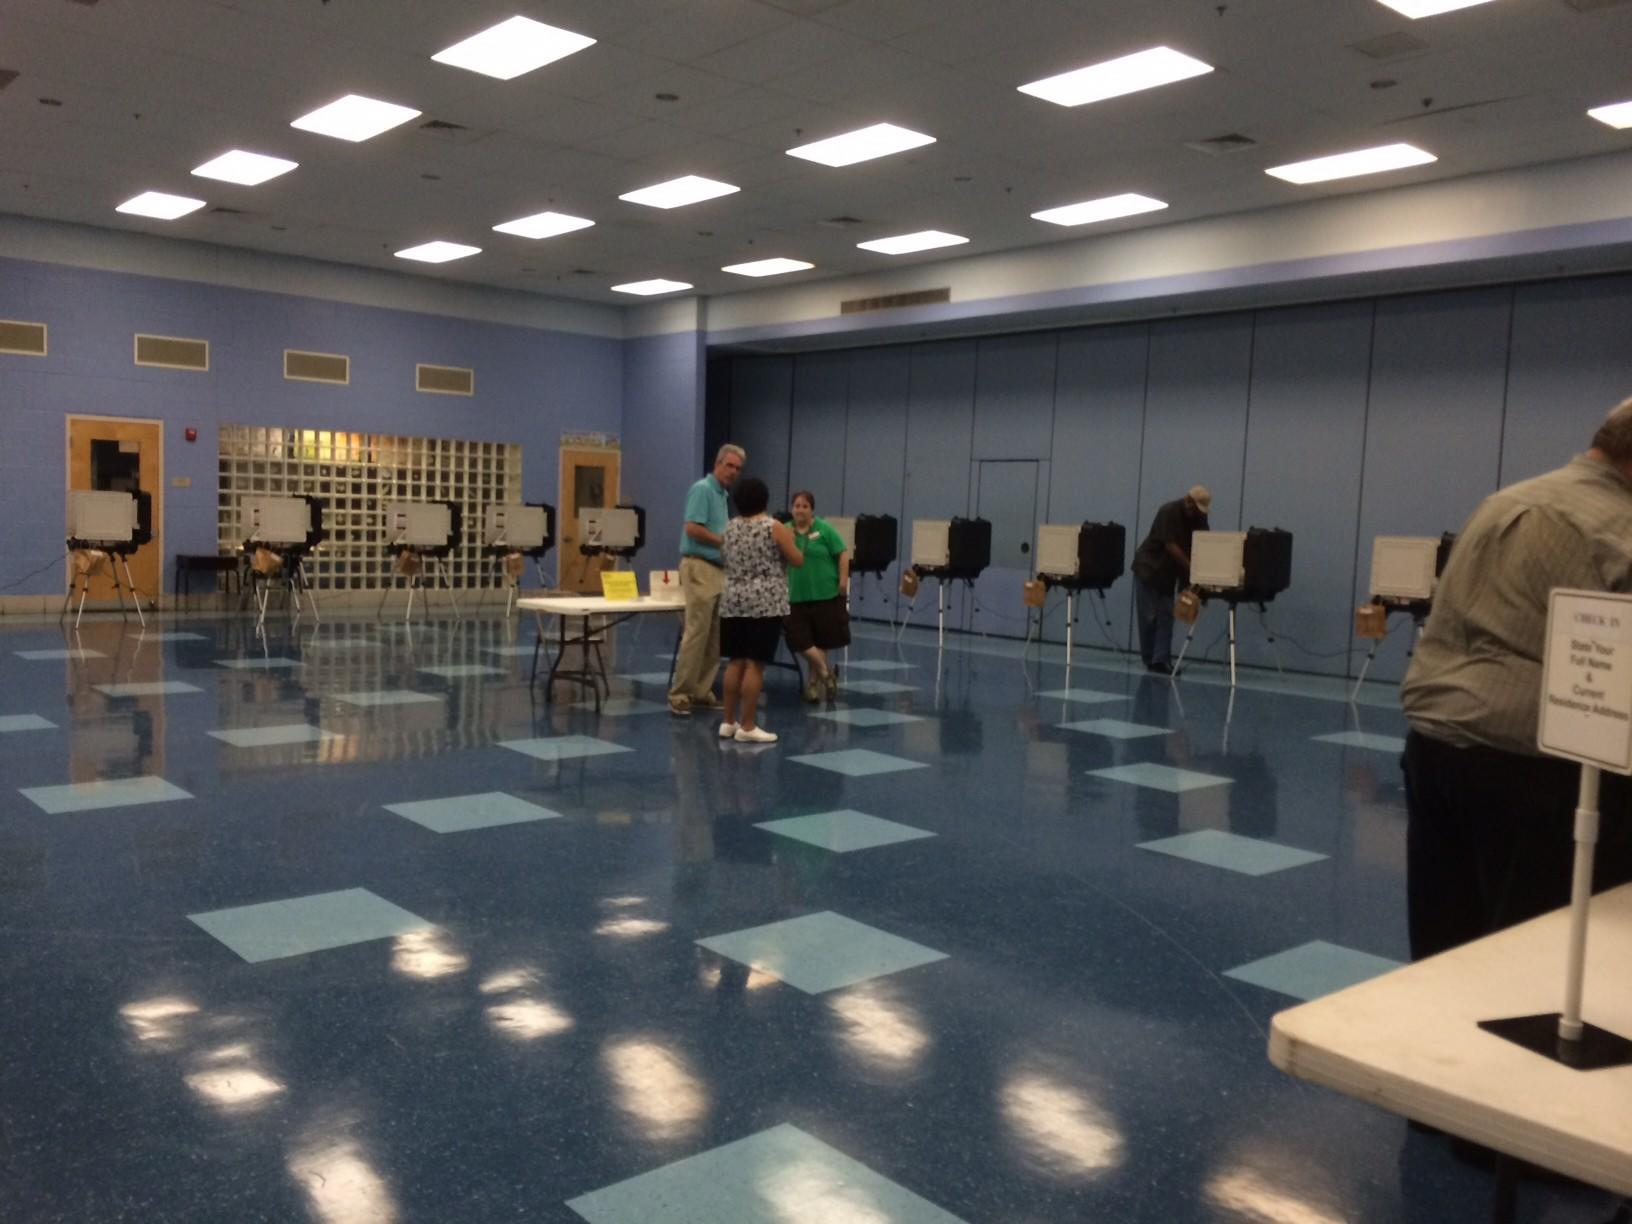 Turnout was light Tuesday morning at Piney Orchard Elementary School in Odenton.